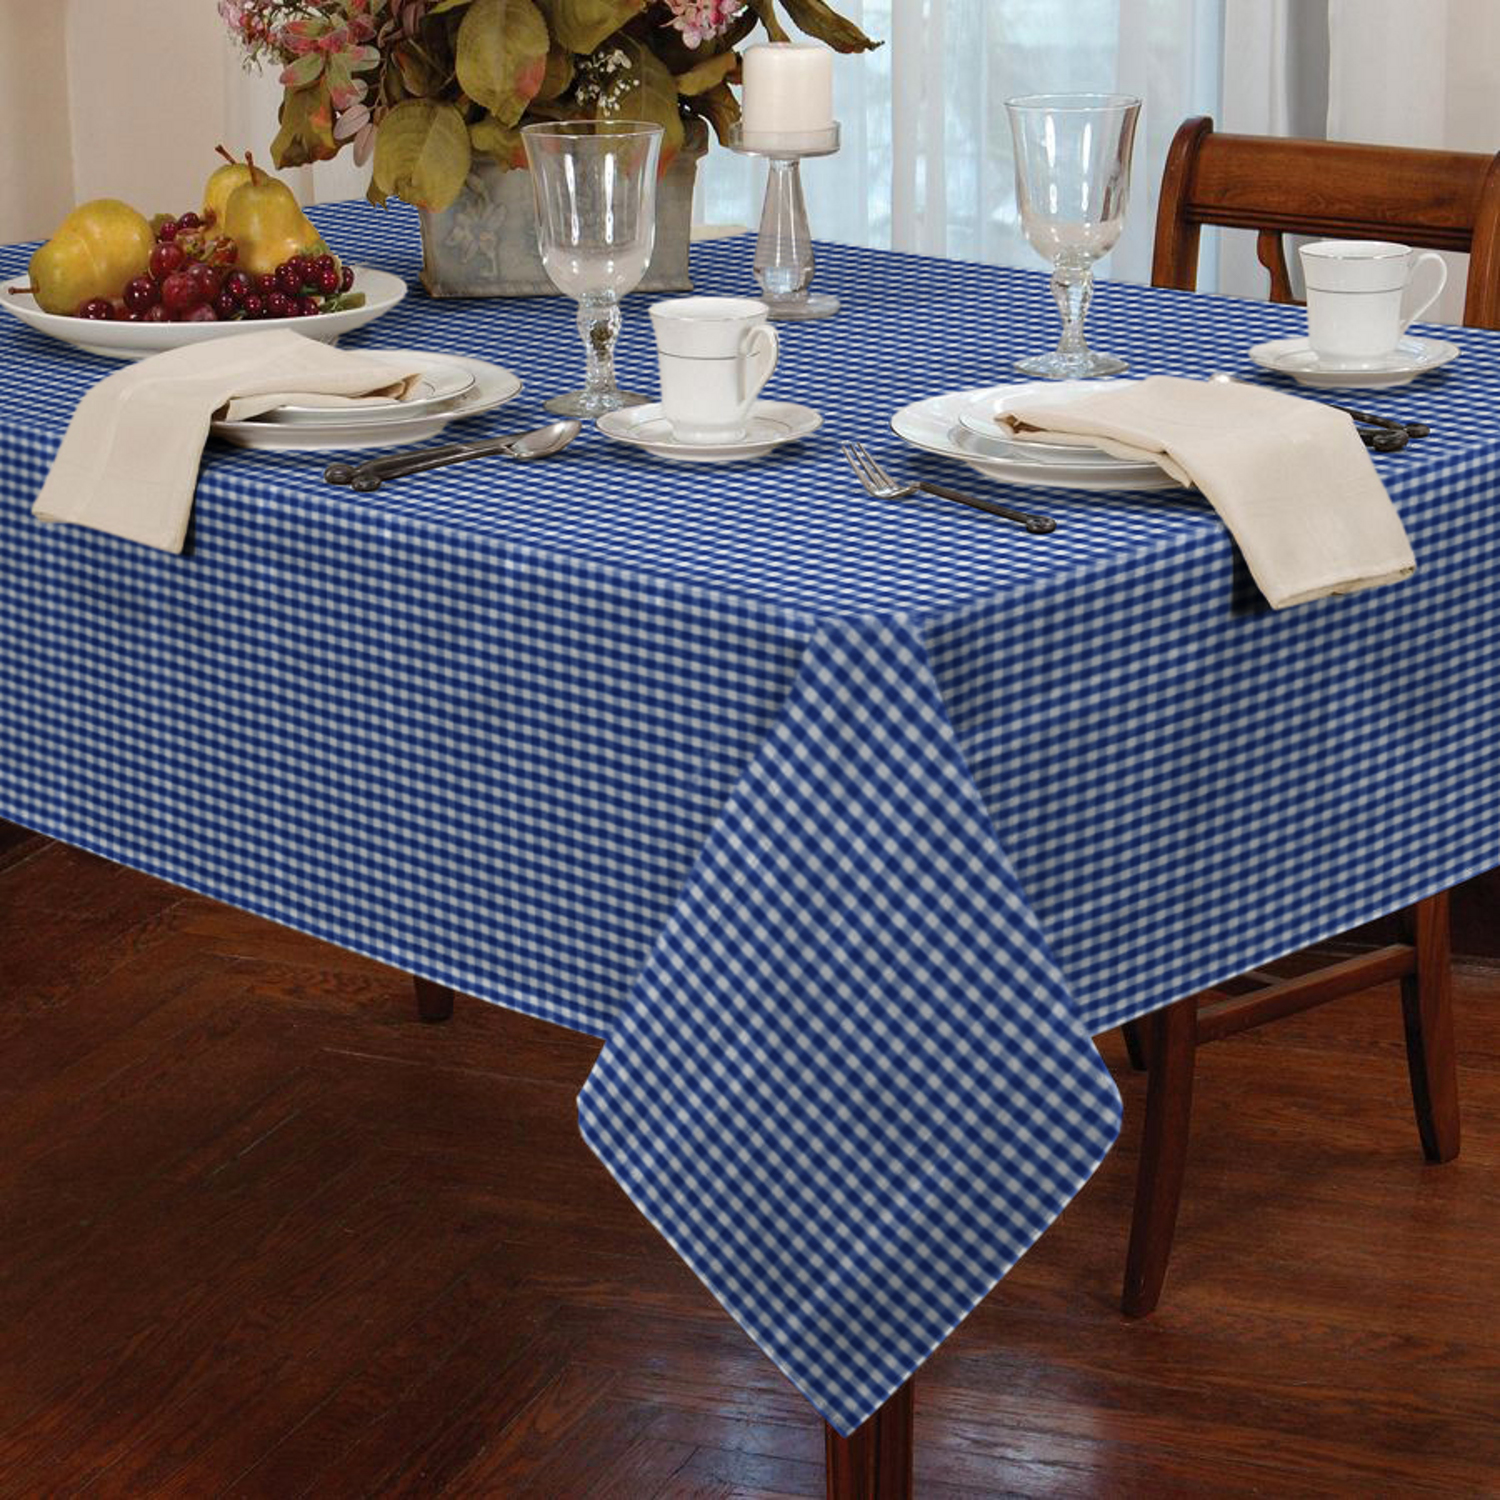 Tablecloth Traditional Gingham Check Round Square Oblong  : GinghamTablecloth20blue from www.ebay.com size 1500 x 1500 jpeg 1412kB